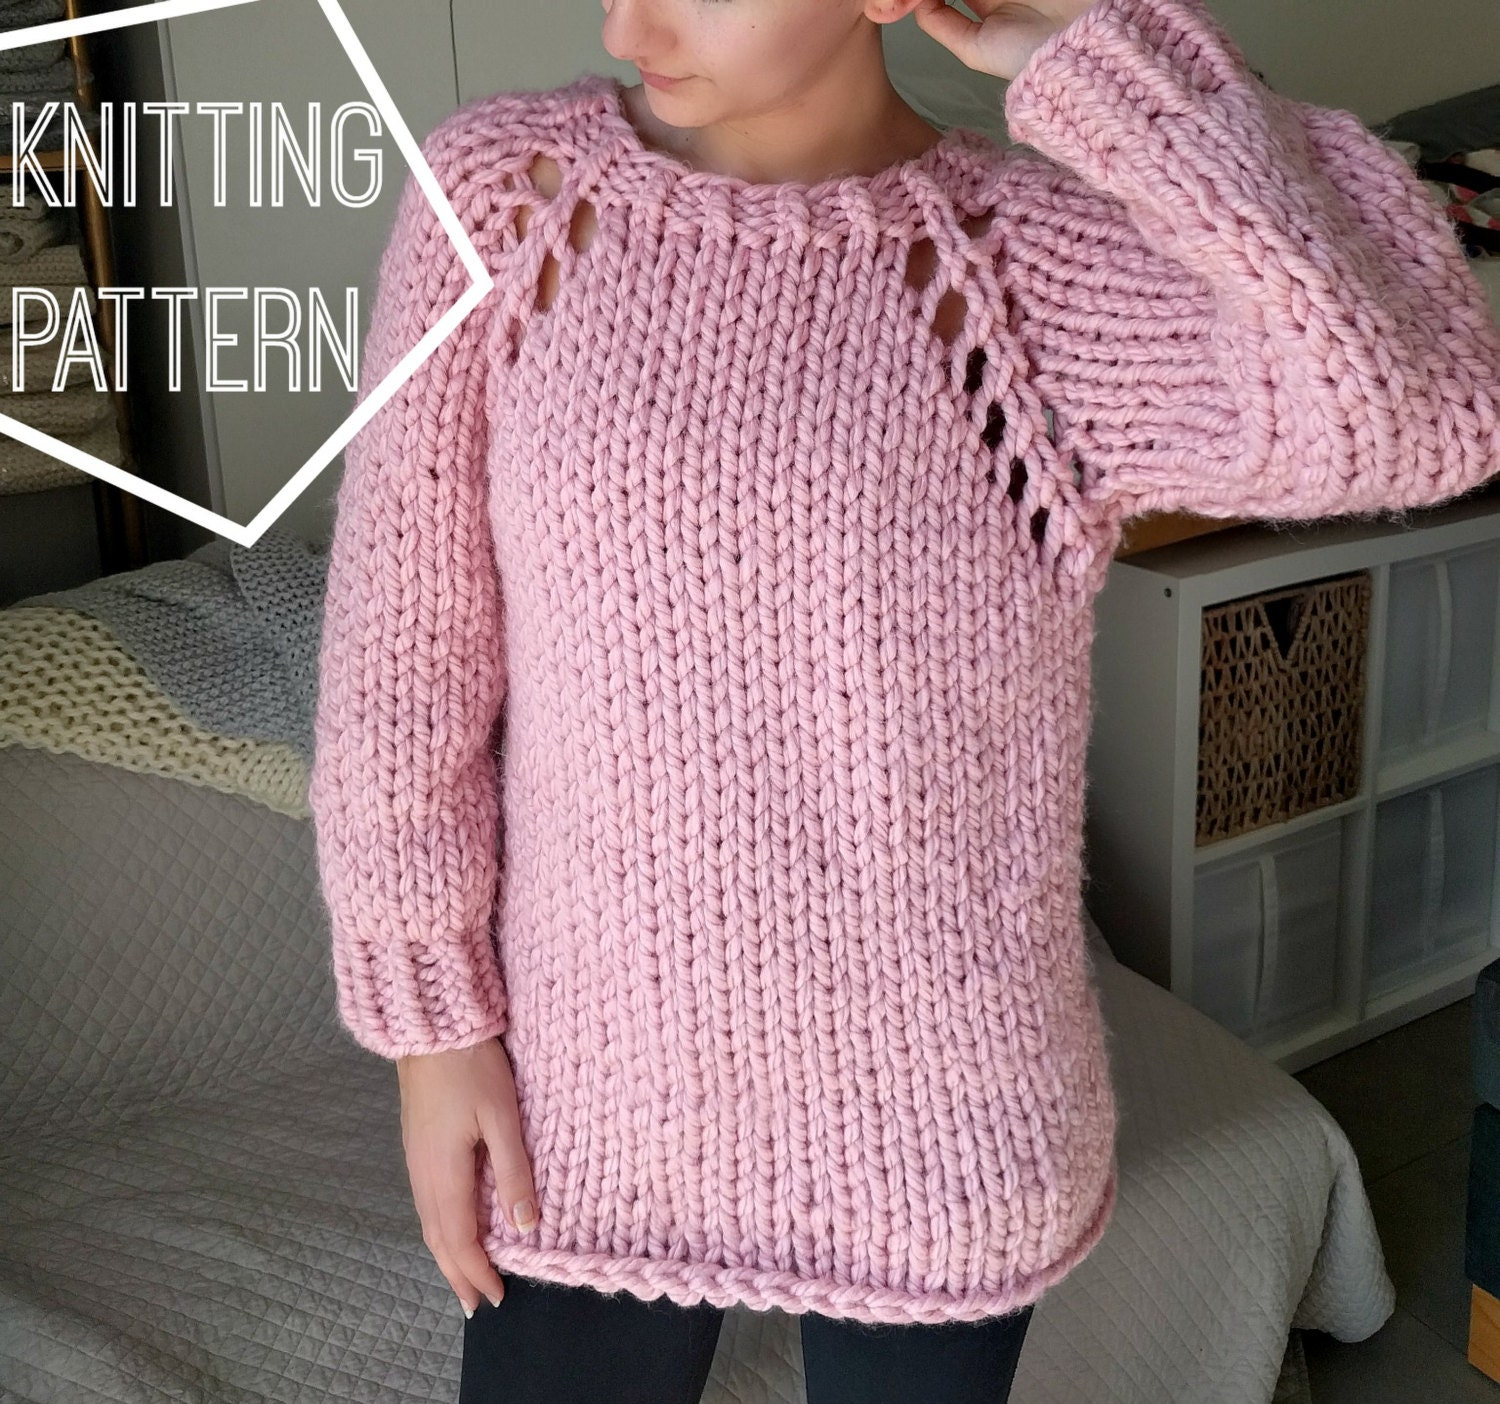 Knitting Top Down Patterns : Chunky knit sweater pattern top down raglan